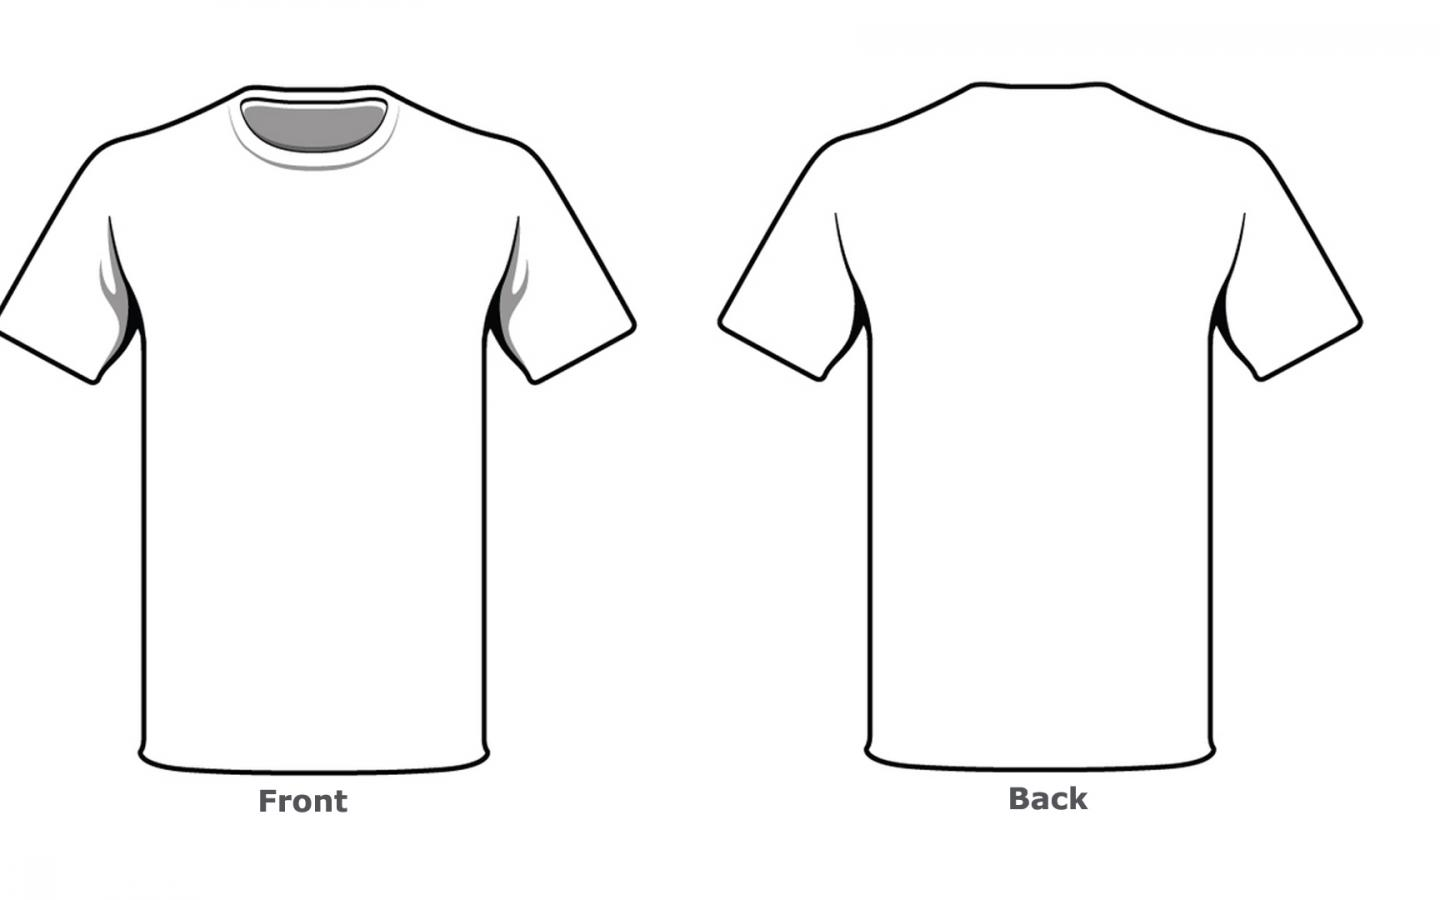 Blank Tshirt Template Front Back Side In High Resolution Hd Wallpapers Wallpapers Download